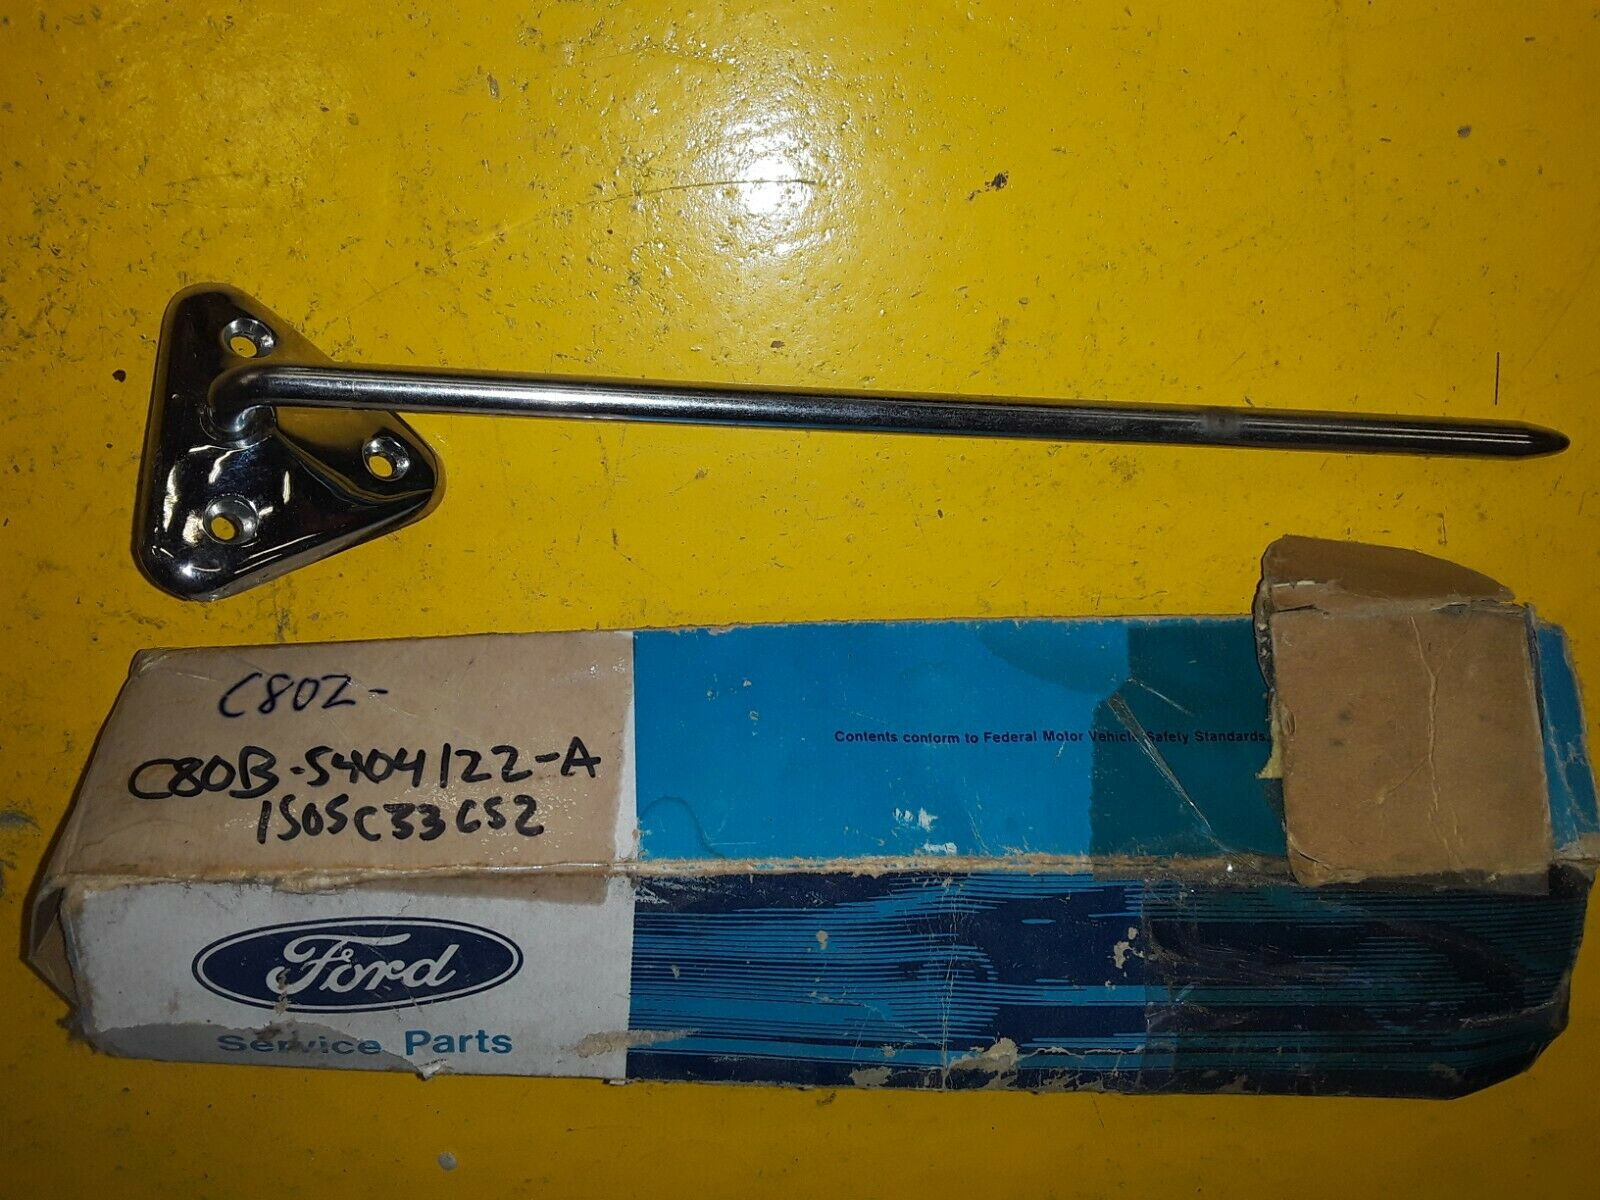 OEM FORD ARM & BRACKET C80B-5404122-A